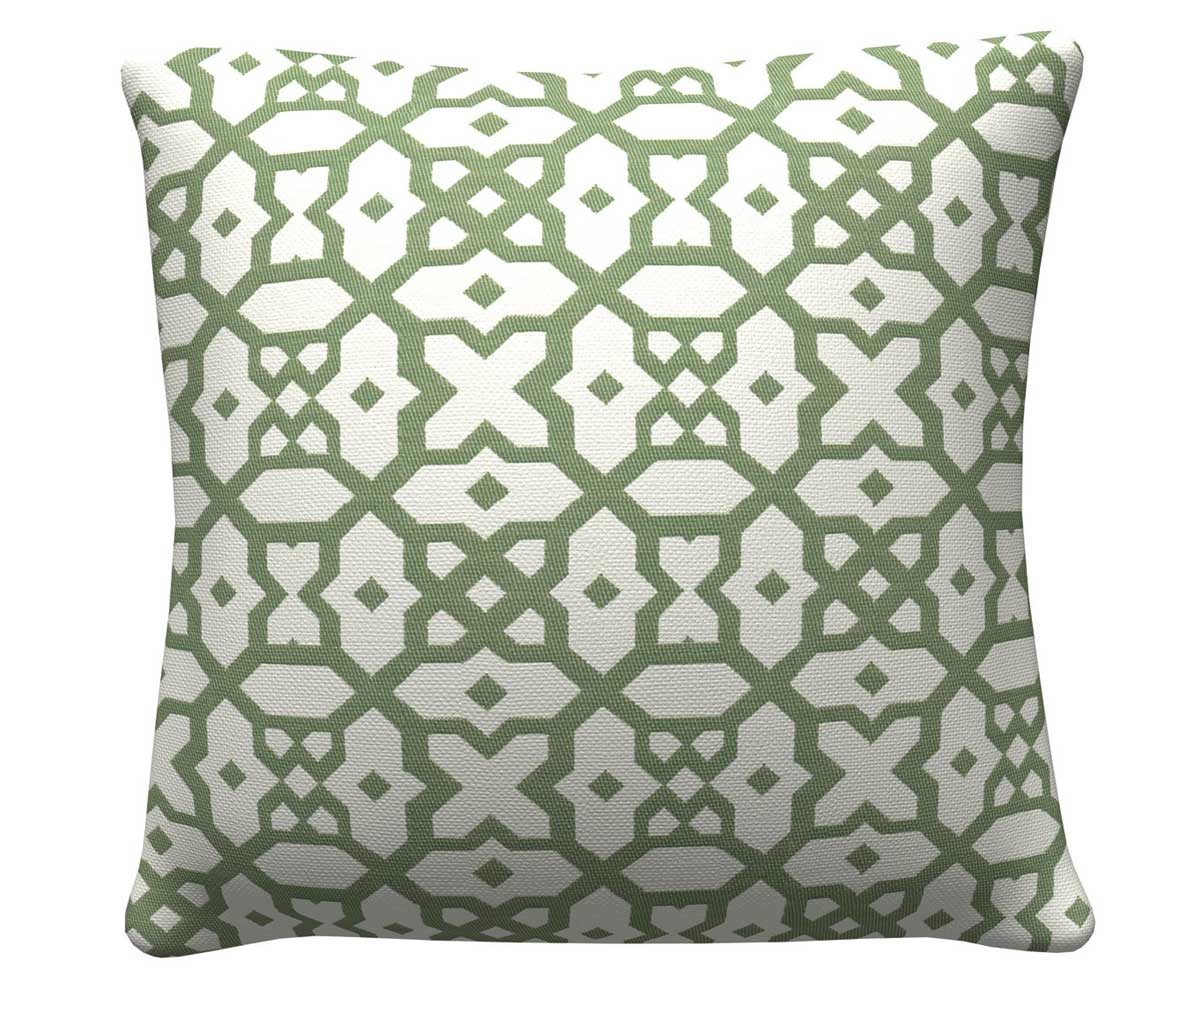 905321 Green Lattic Pillow